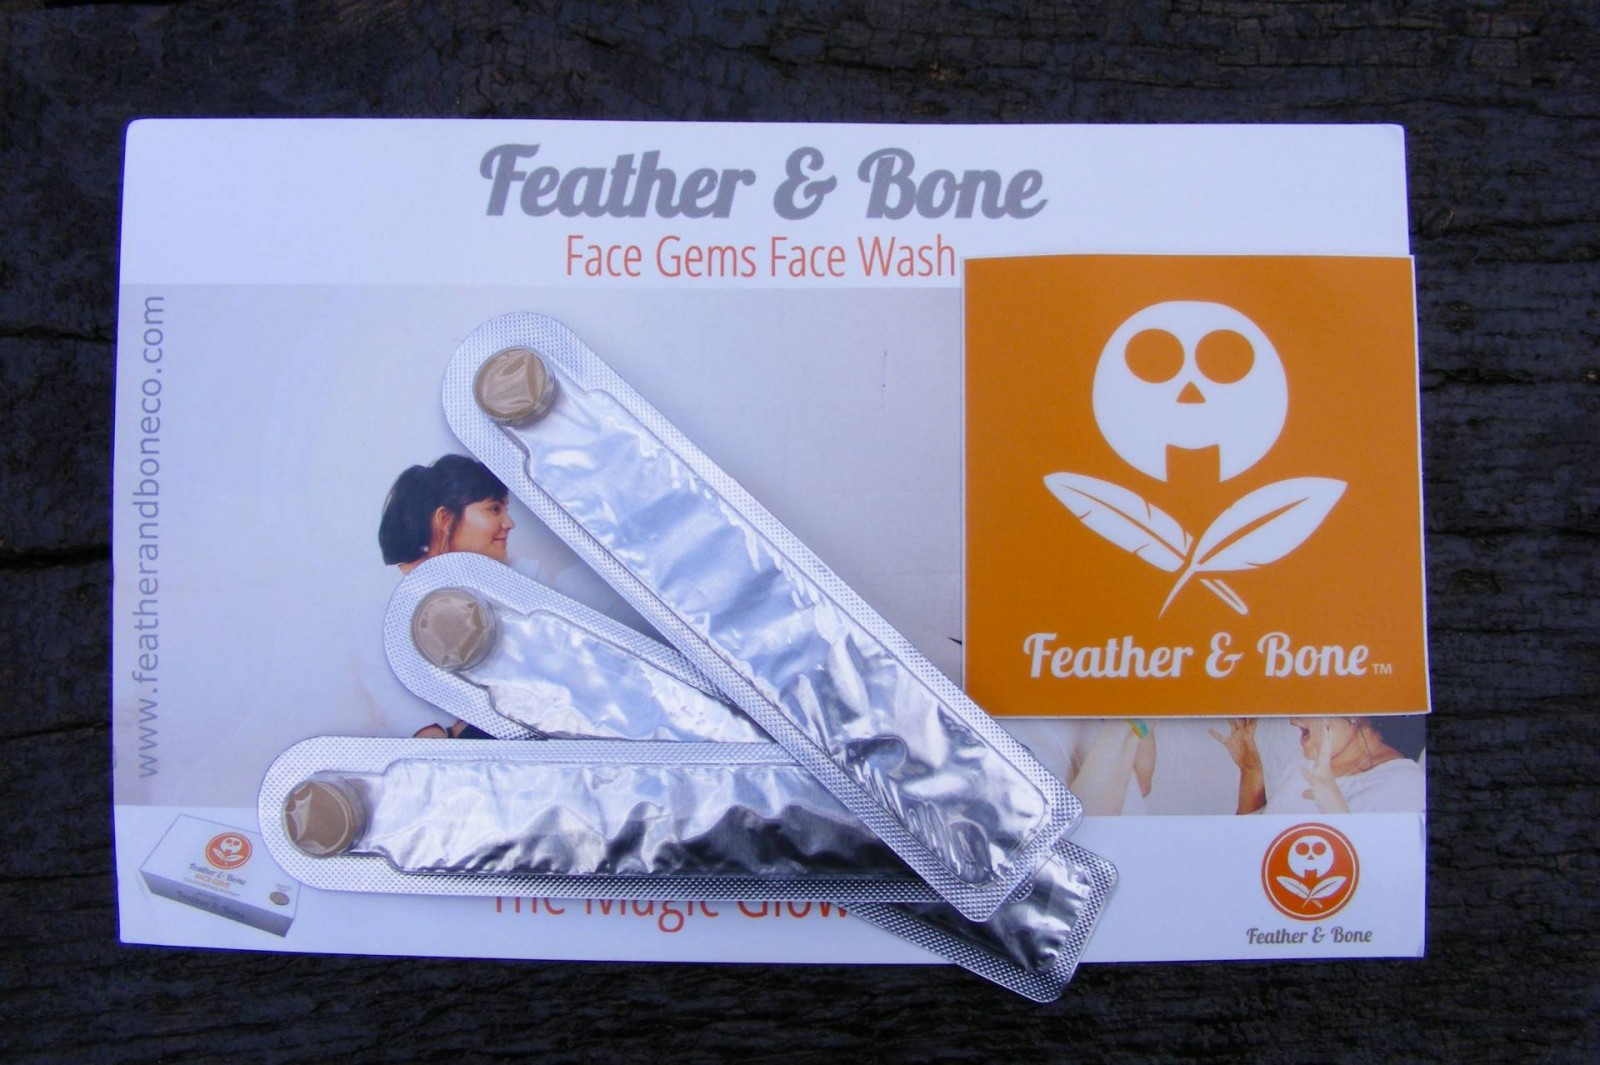 Feather and Bone face gems face wash